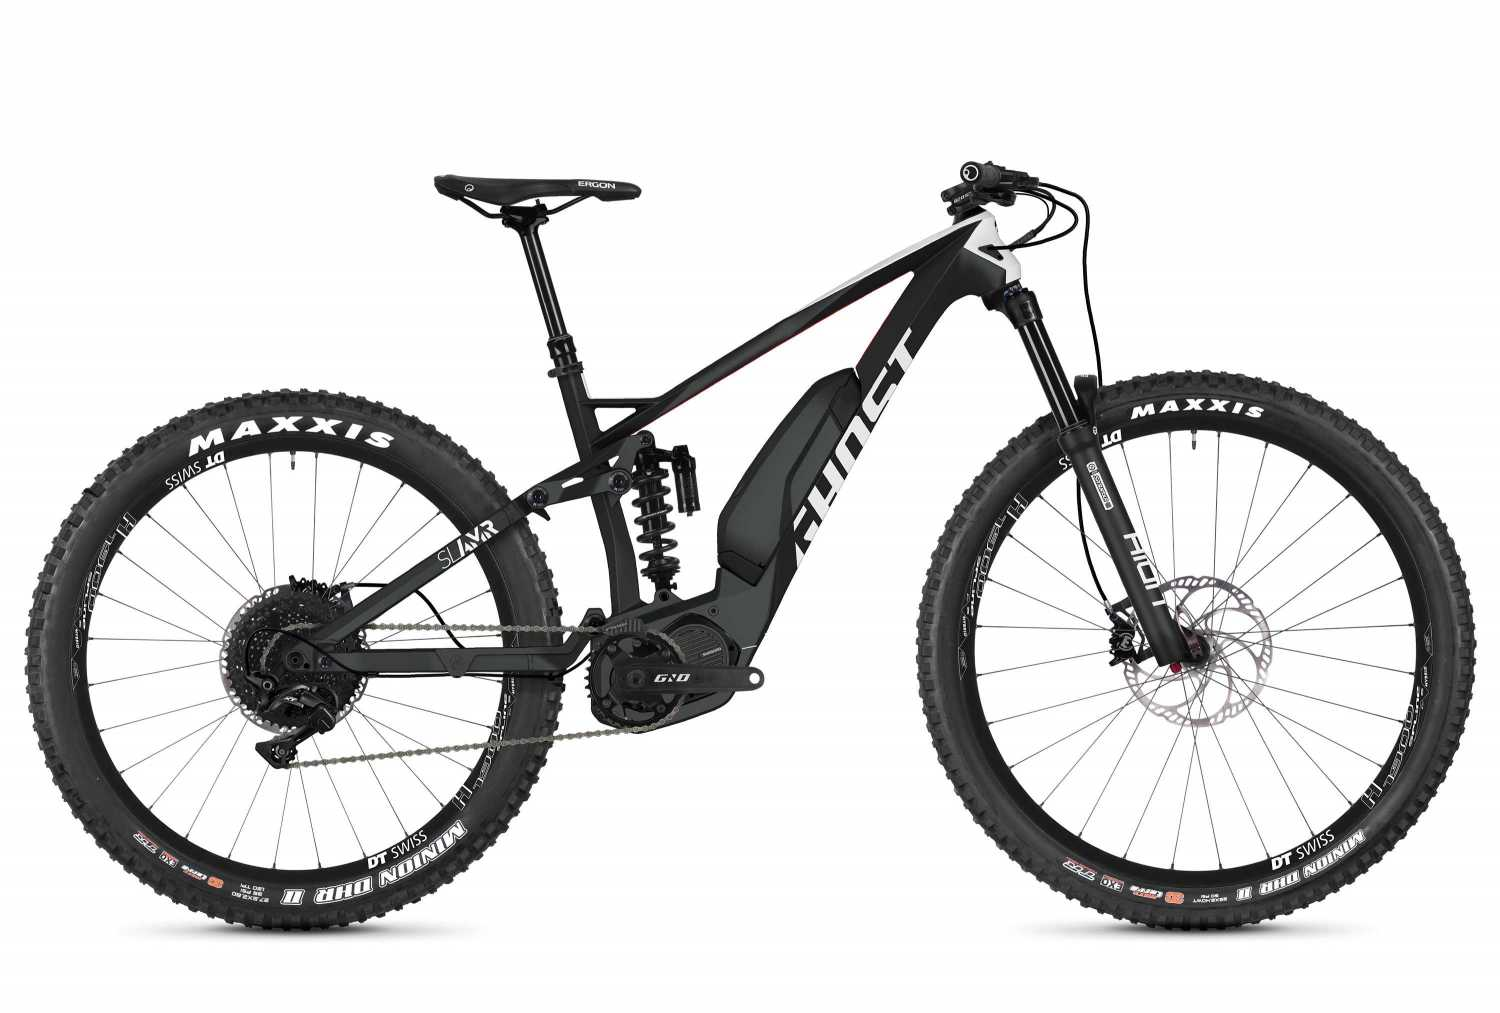 GHOST HybRide SL AMR S 4.7+ LC